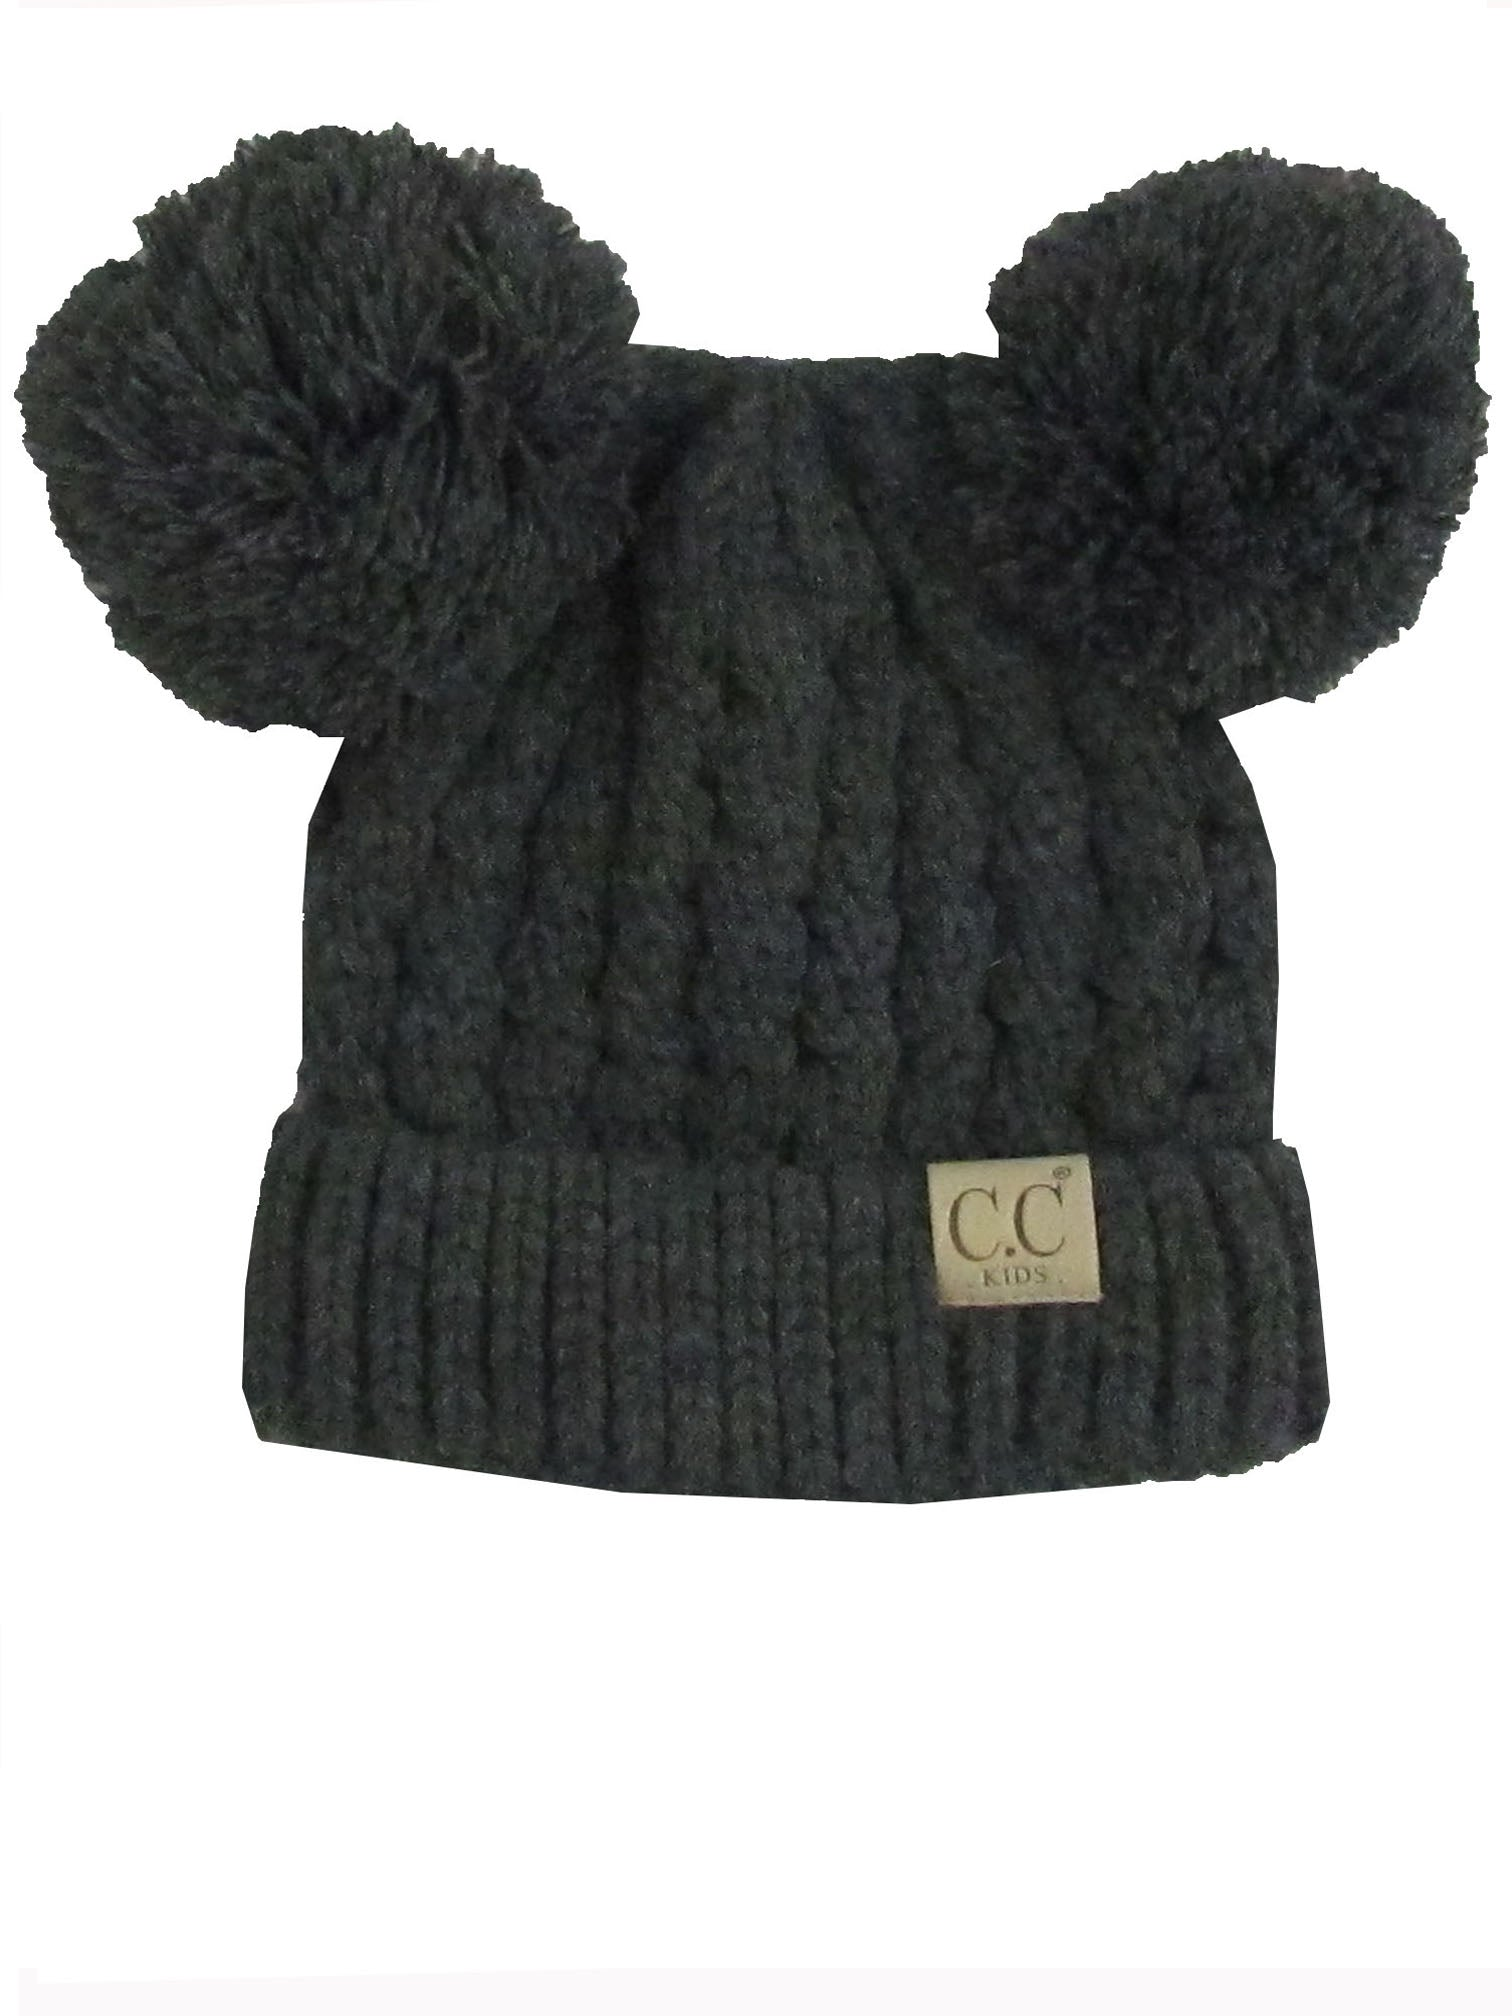 C.C Kid-24 Dark Melange Grey Youth Beanie